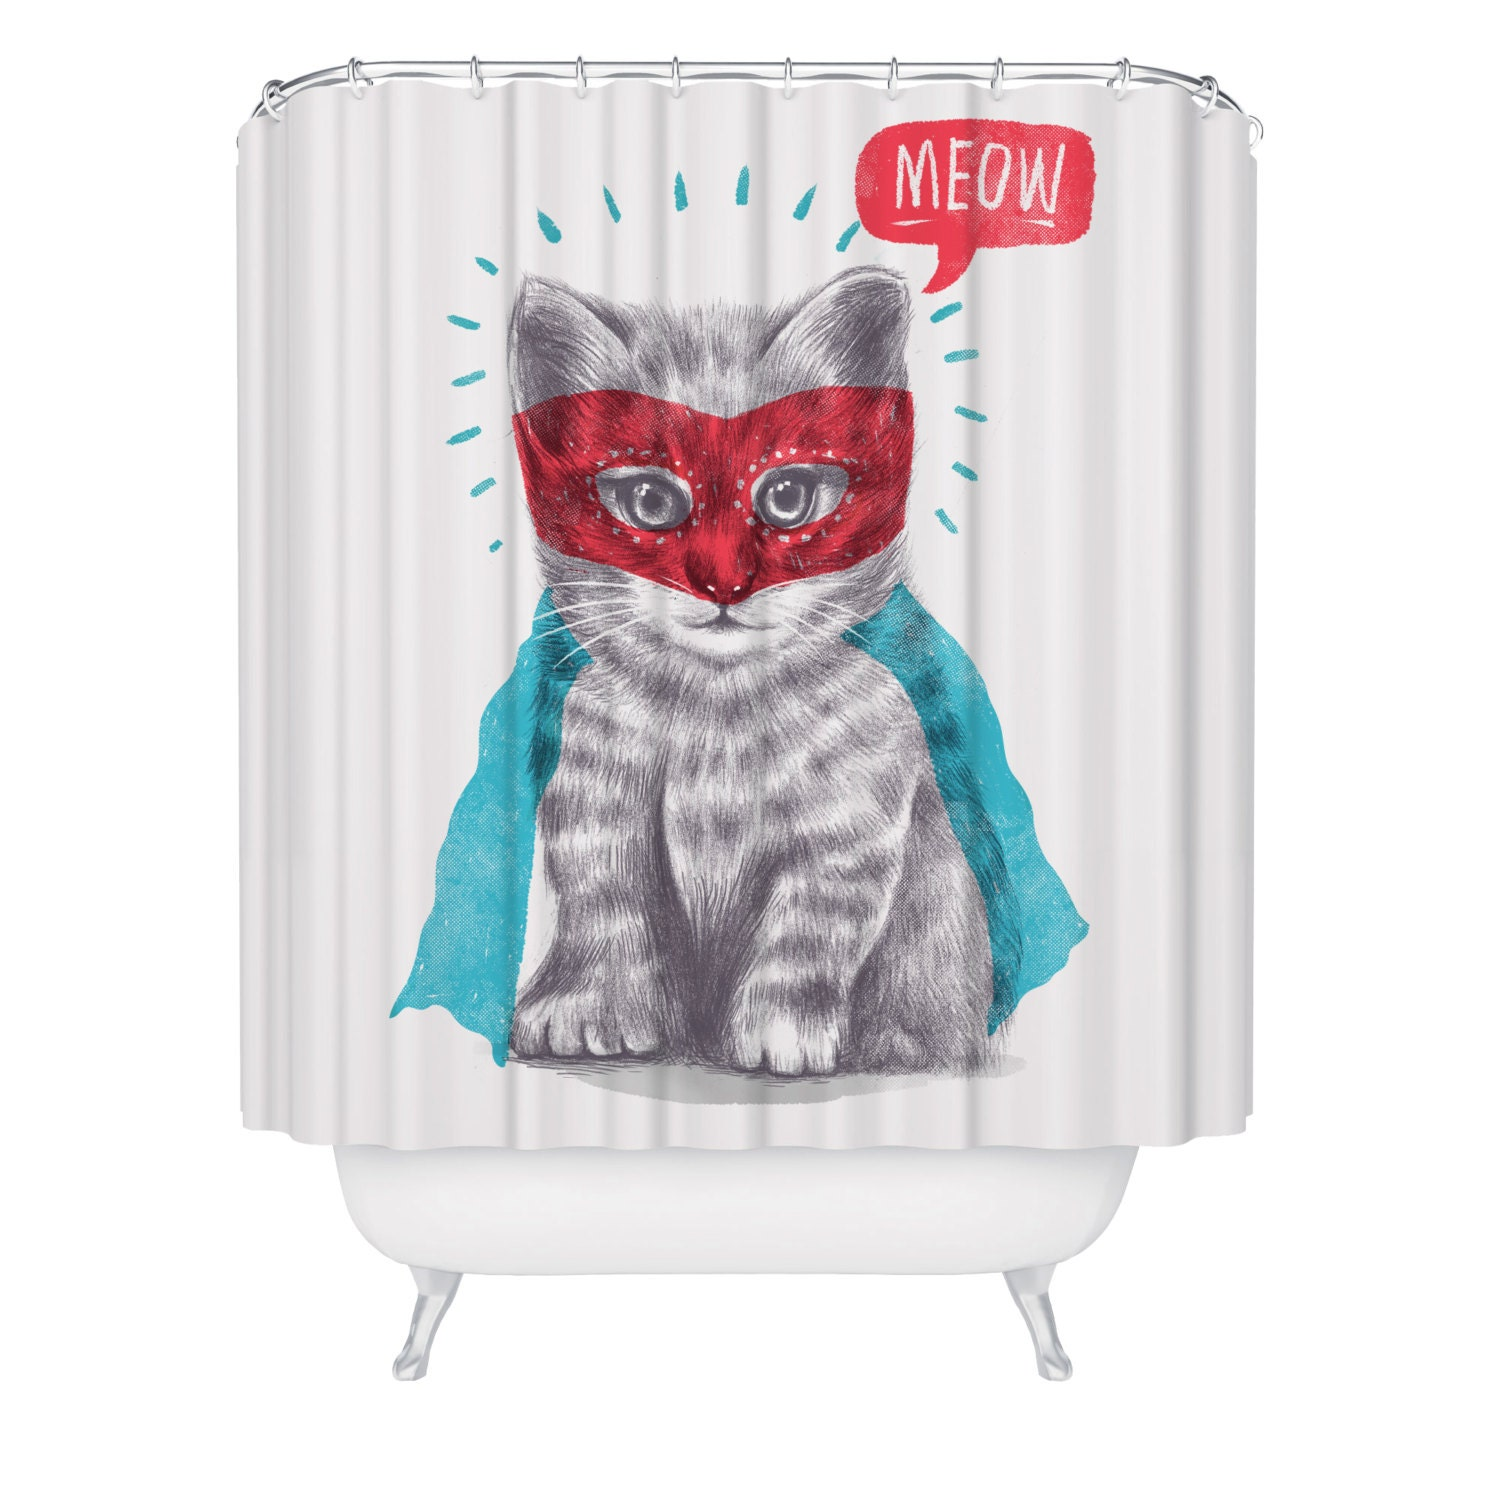 super hero cat lover shower curtain cute funny kitten feline